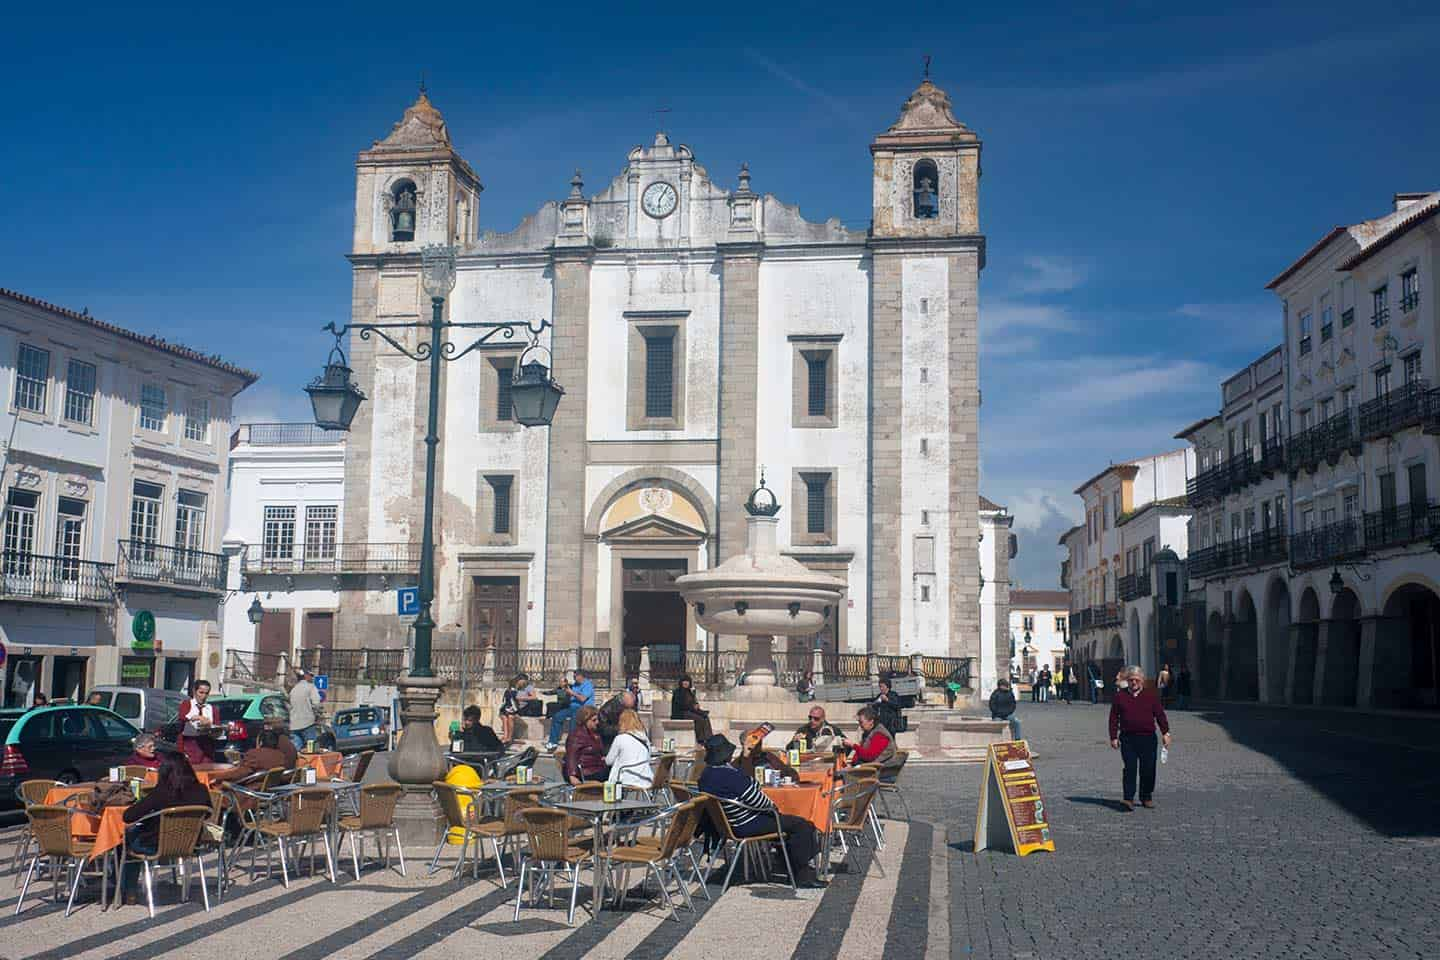 Image of Evora's main square, the Praça do Giraldo